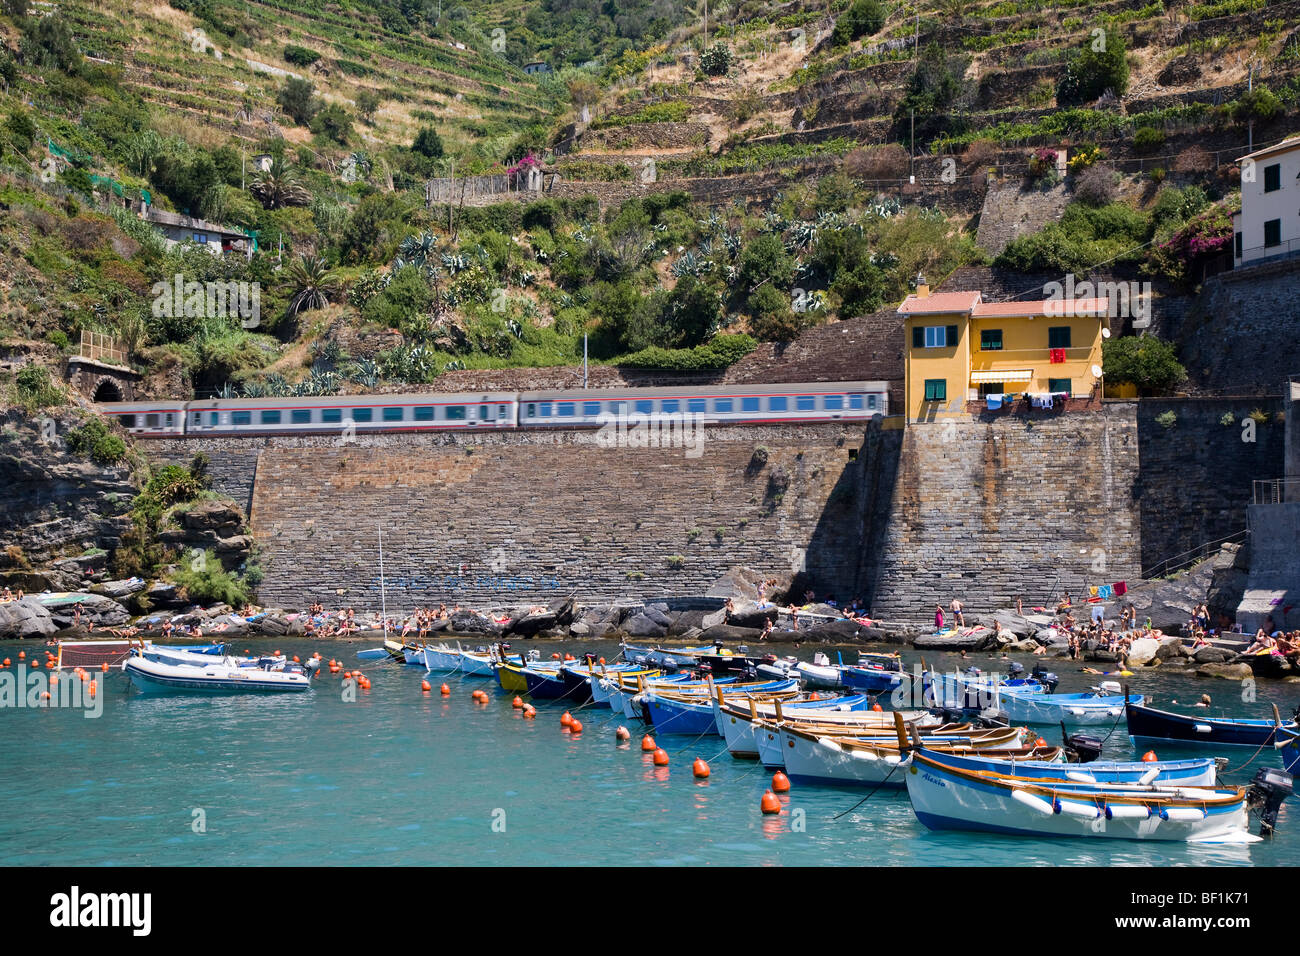 Train passing by and harbour, Vernazza, Cinque Terre, Liguria, Italy - Stock Image